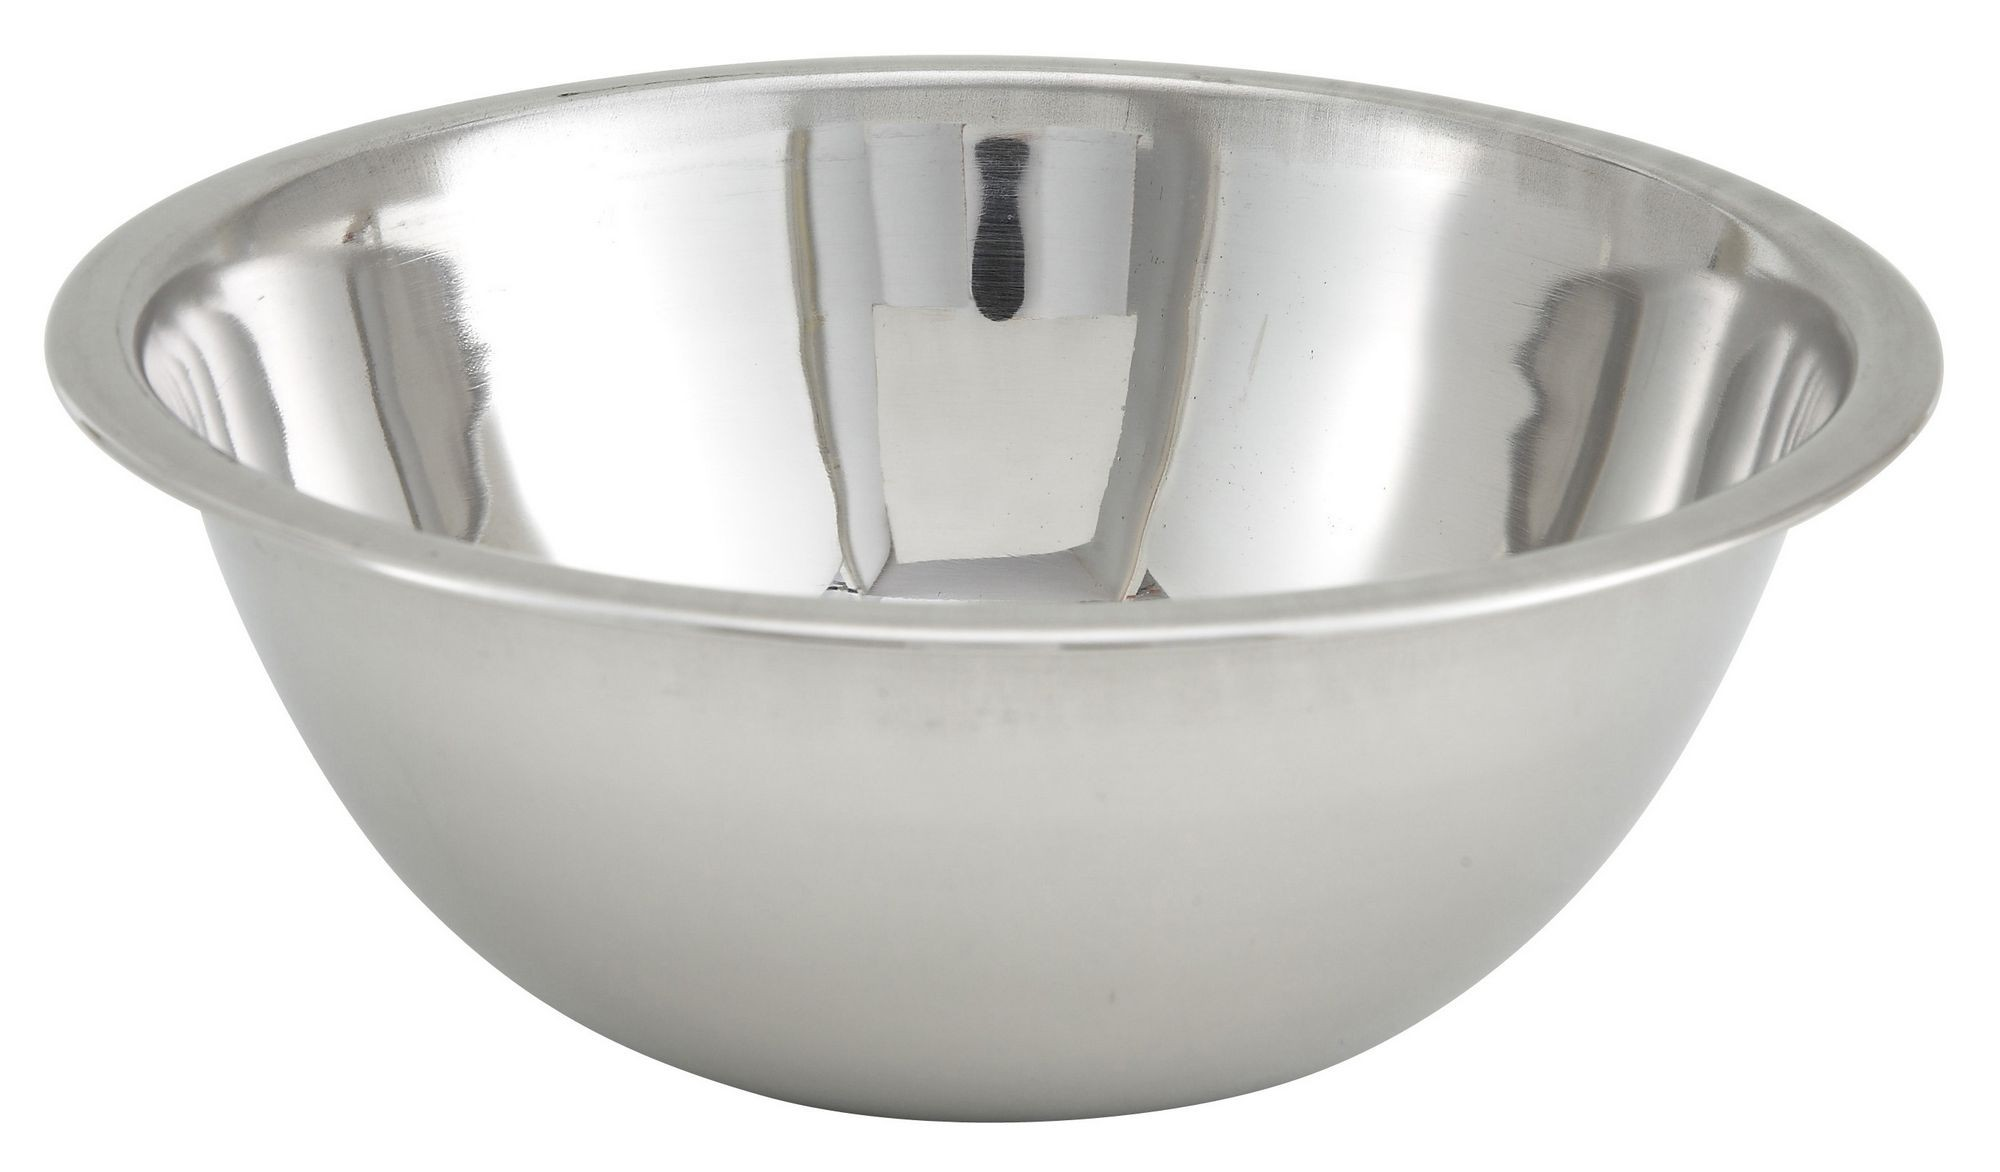 Winco MXB-150Q Stainless Steel 1-1/2 Qt. Mixing Bowl